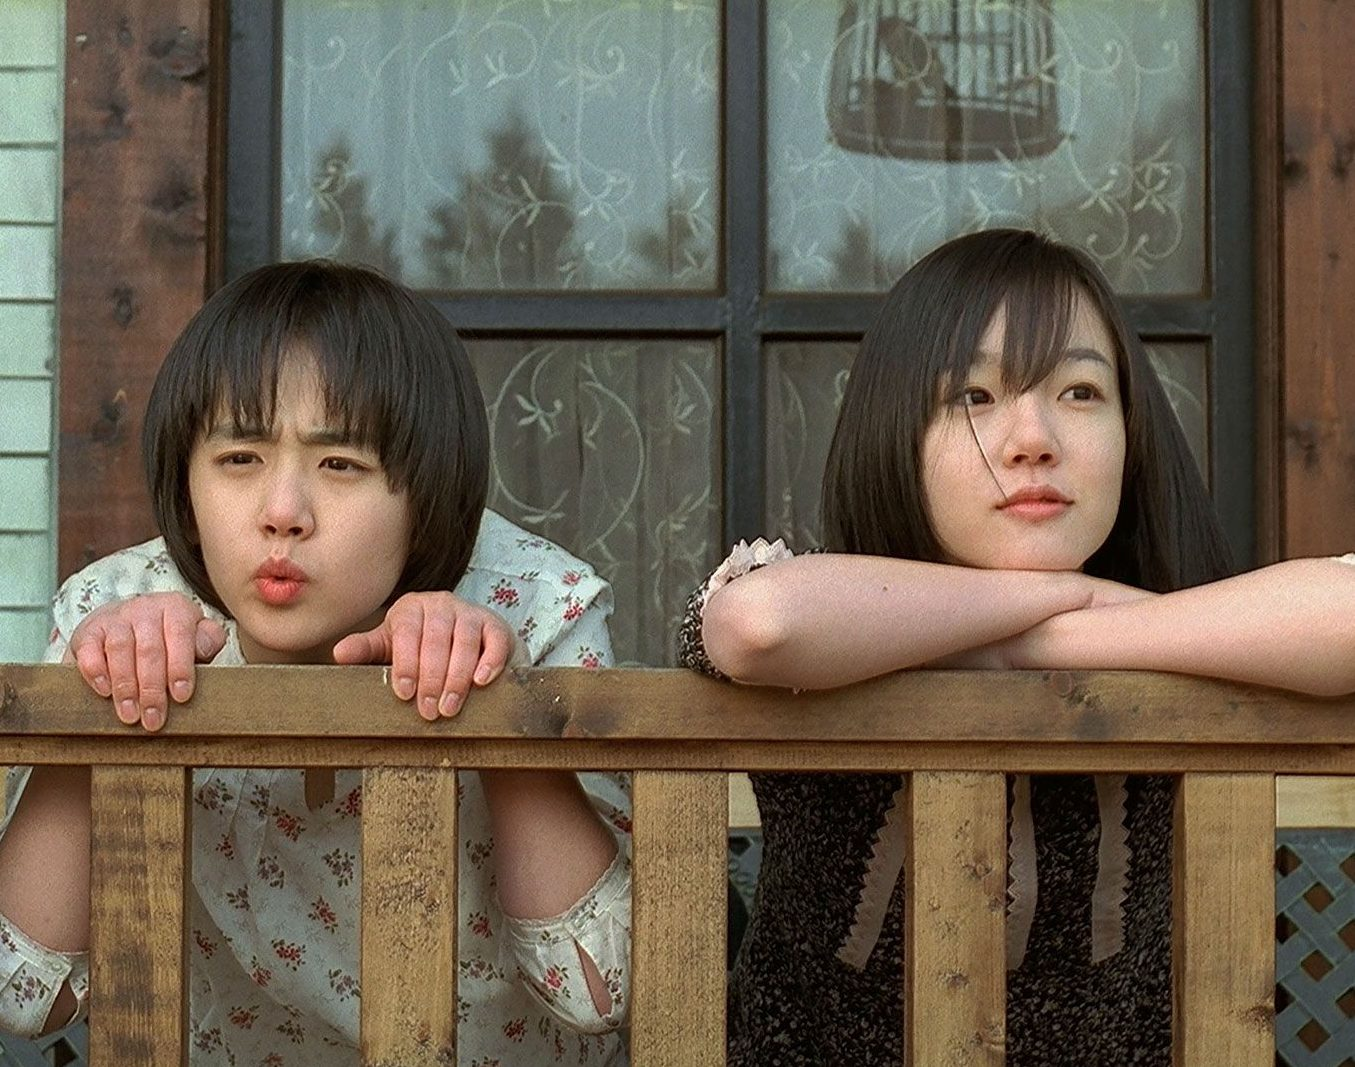 taleoftwosisters e1605627973289 10 Remakes Of Foreign-Language Horror Movies That Are Worth A Watch (And 10 That Were Awful)